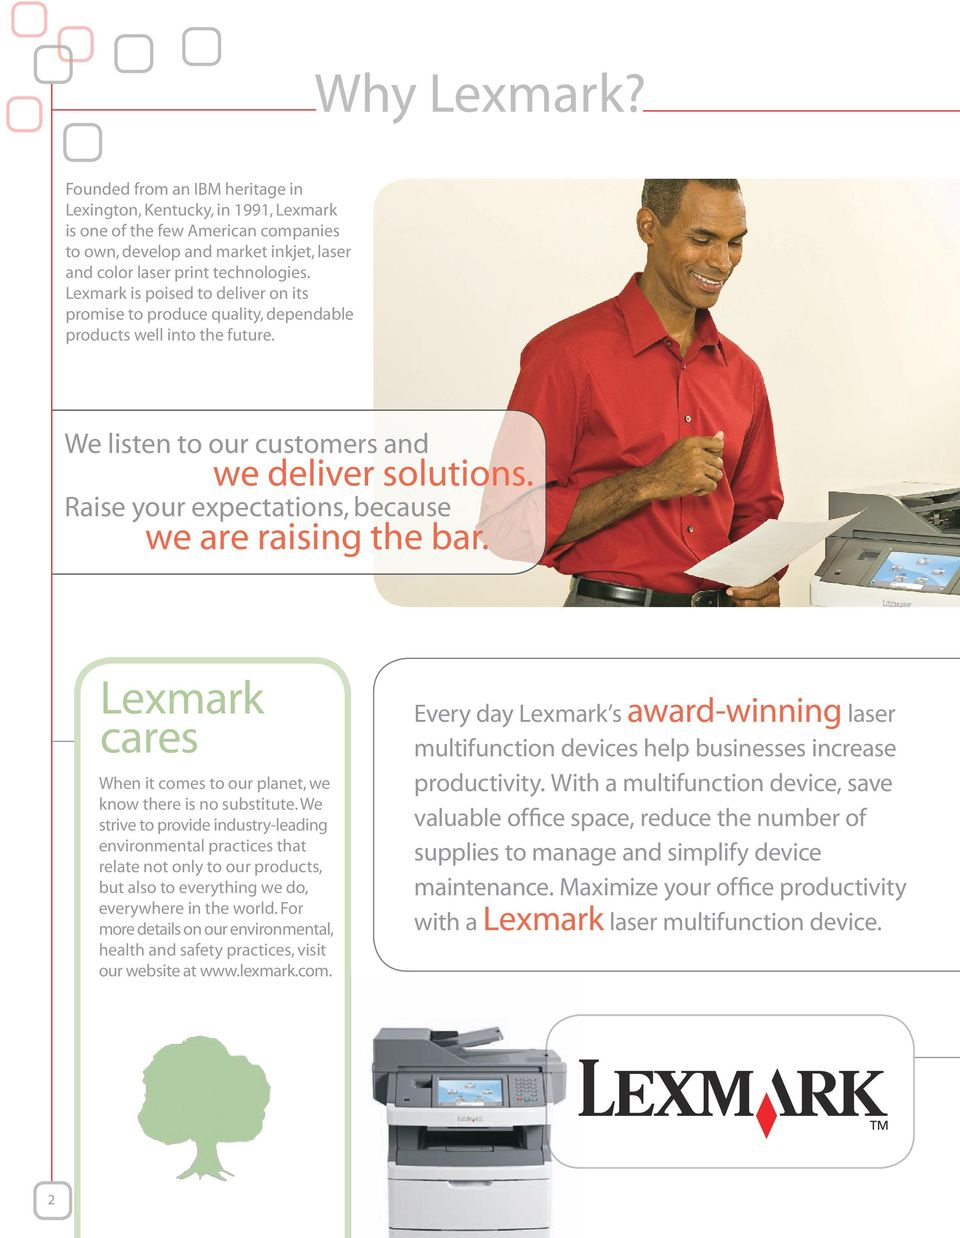 Raise your expectations, because we are raising the bar. Lexmark cares When it comes to our planet, we know there is no substitute.